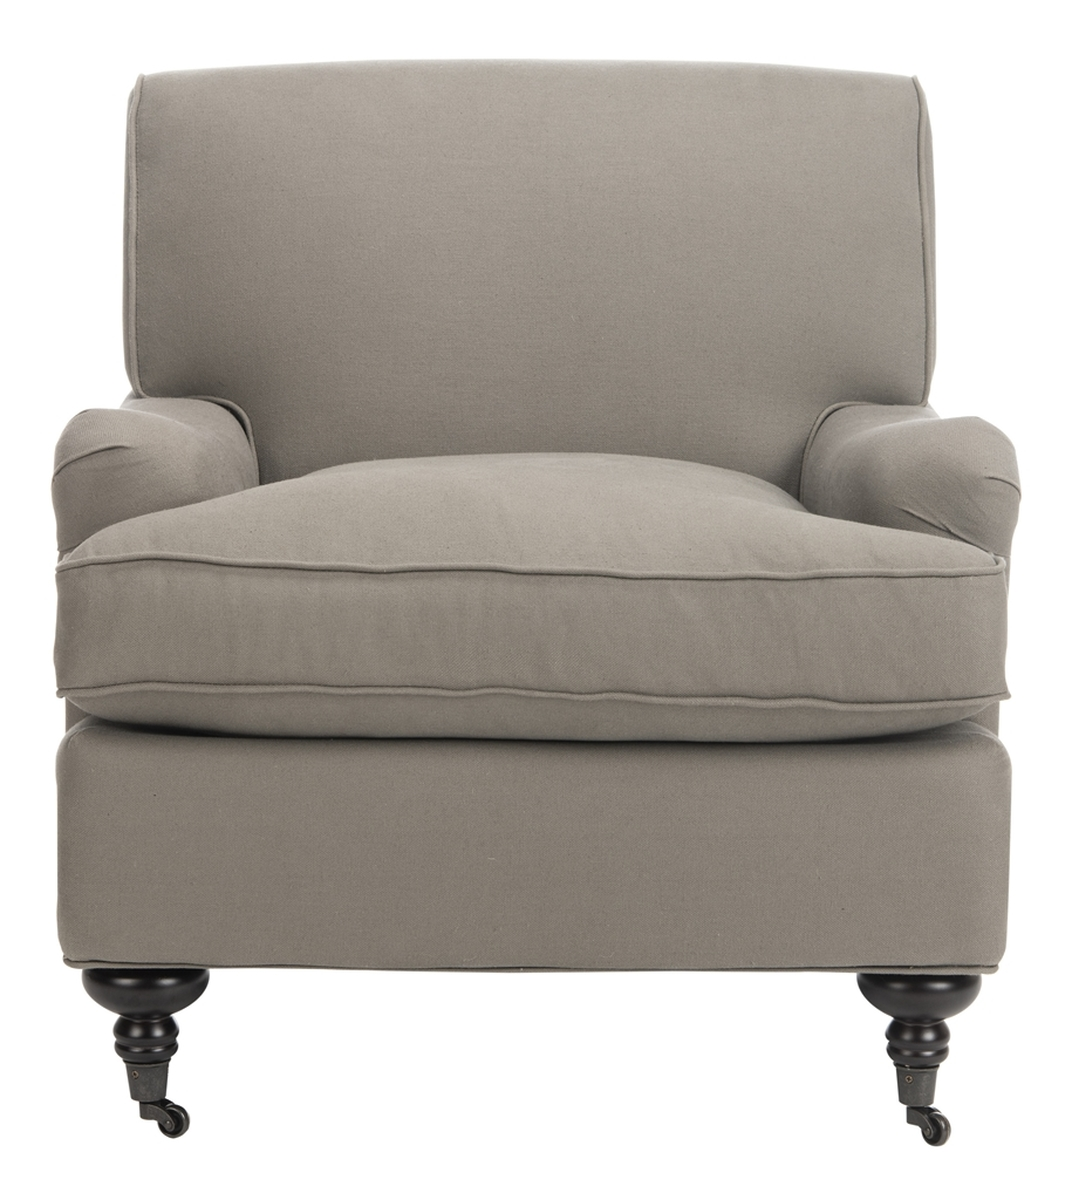 Merveilleux CHLOE CLUB CHAIR MCR4571A ACCENT CHAIRS